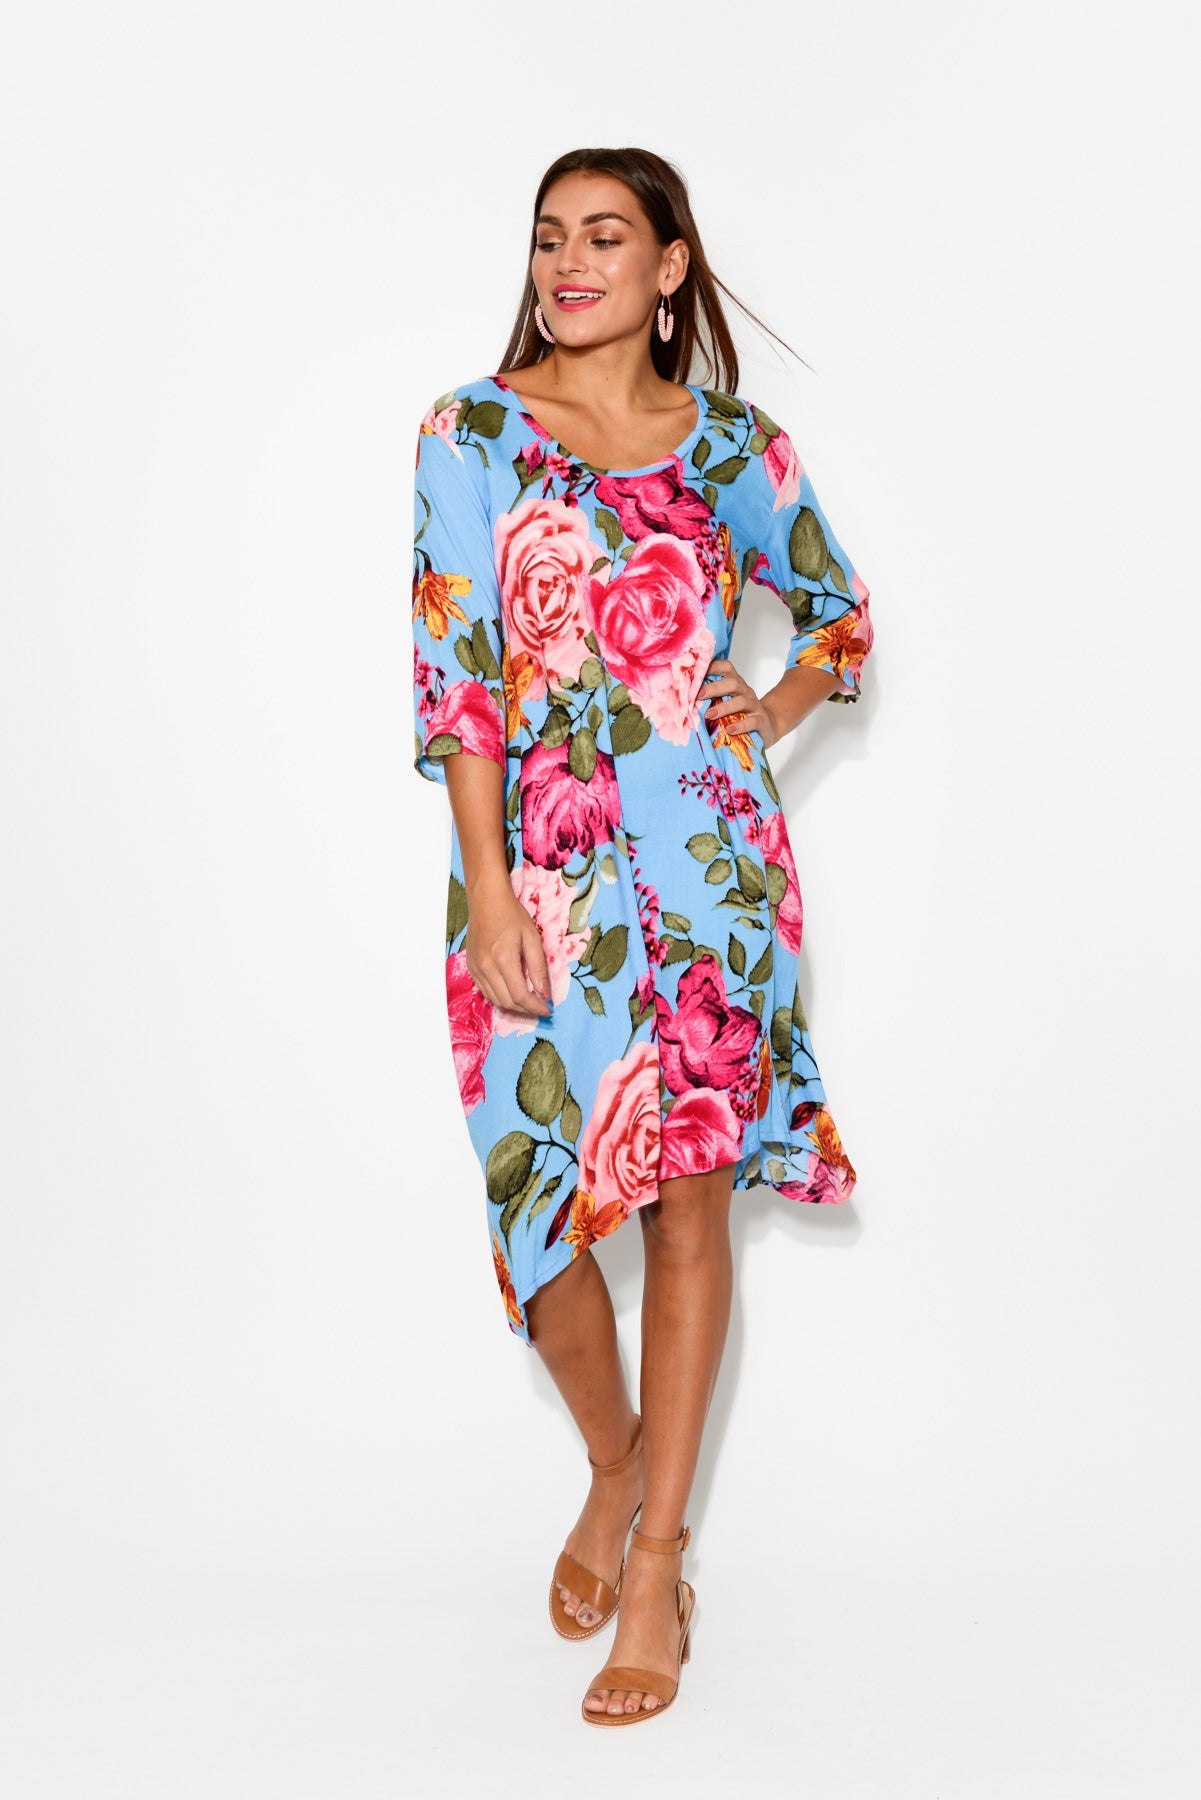 Lori Blue Rose A Line Dress - Blue Bungalow